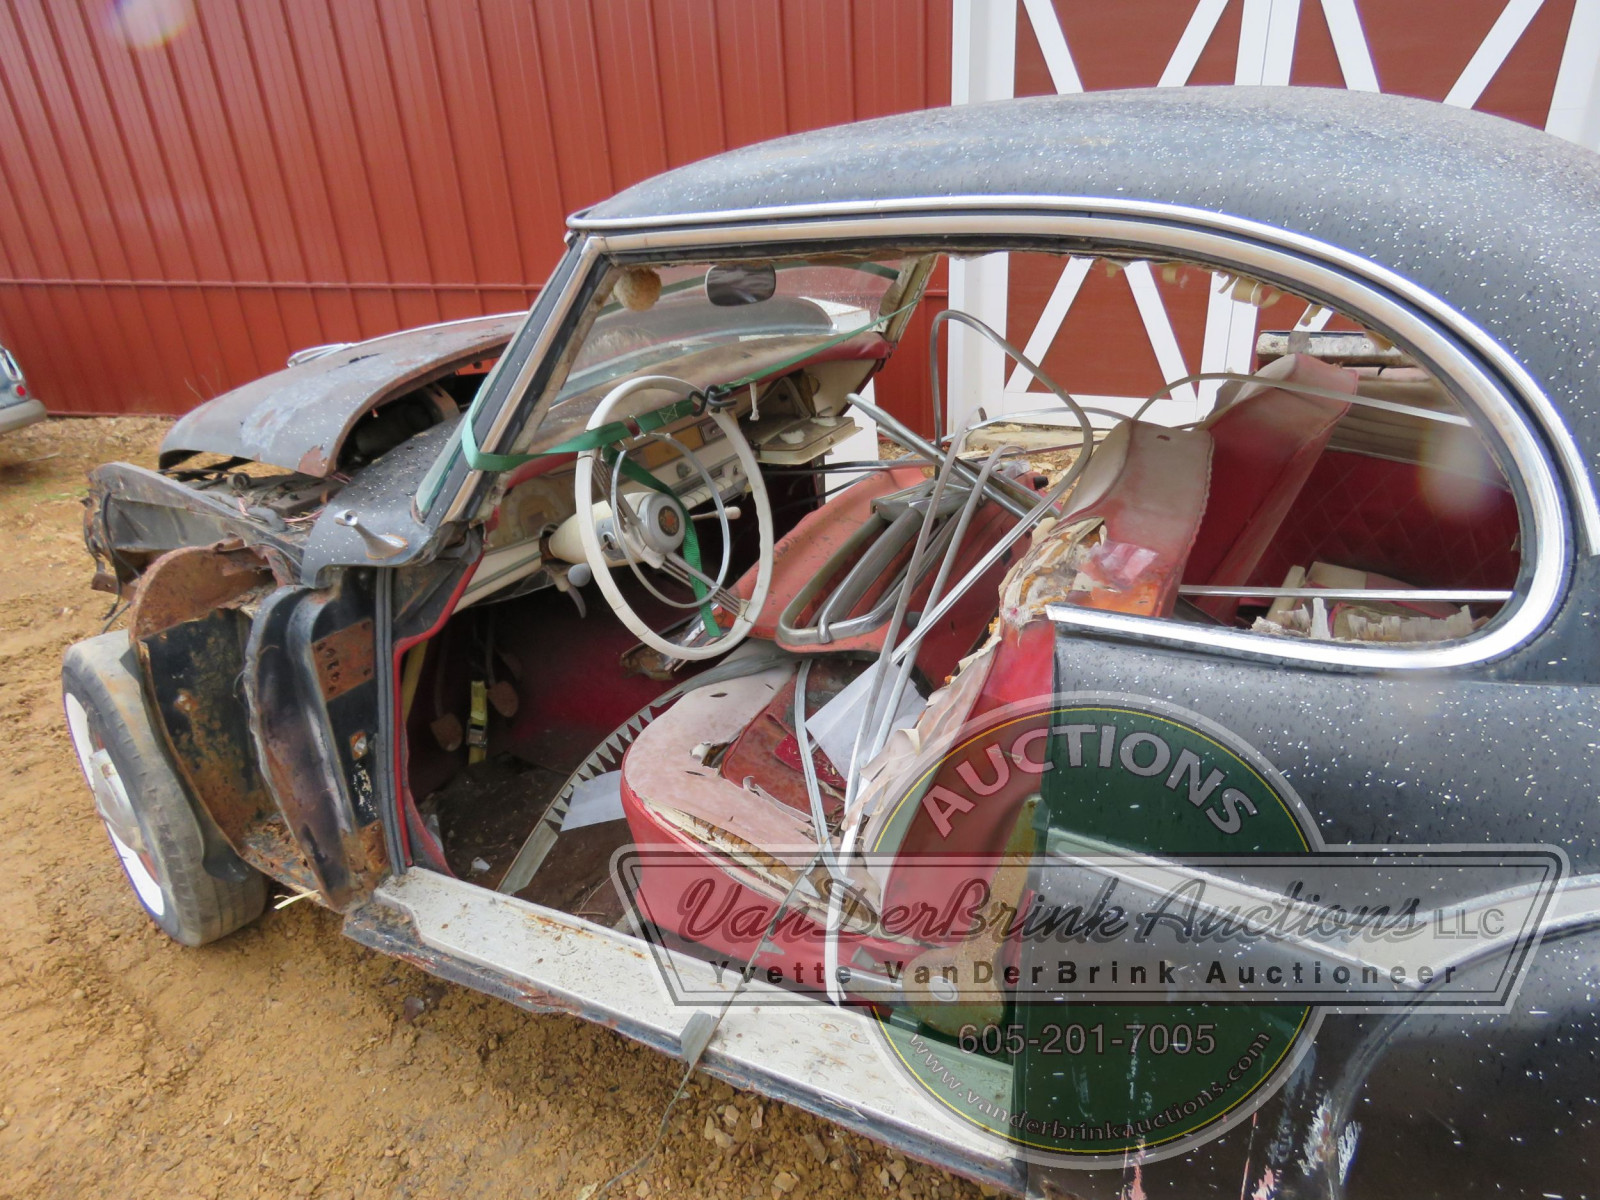 Borgward Coupe for project or parts - Image 6